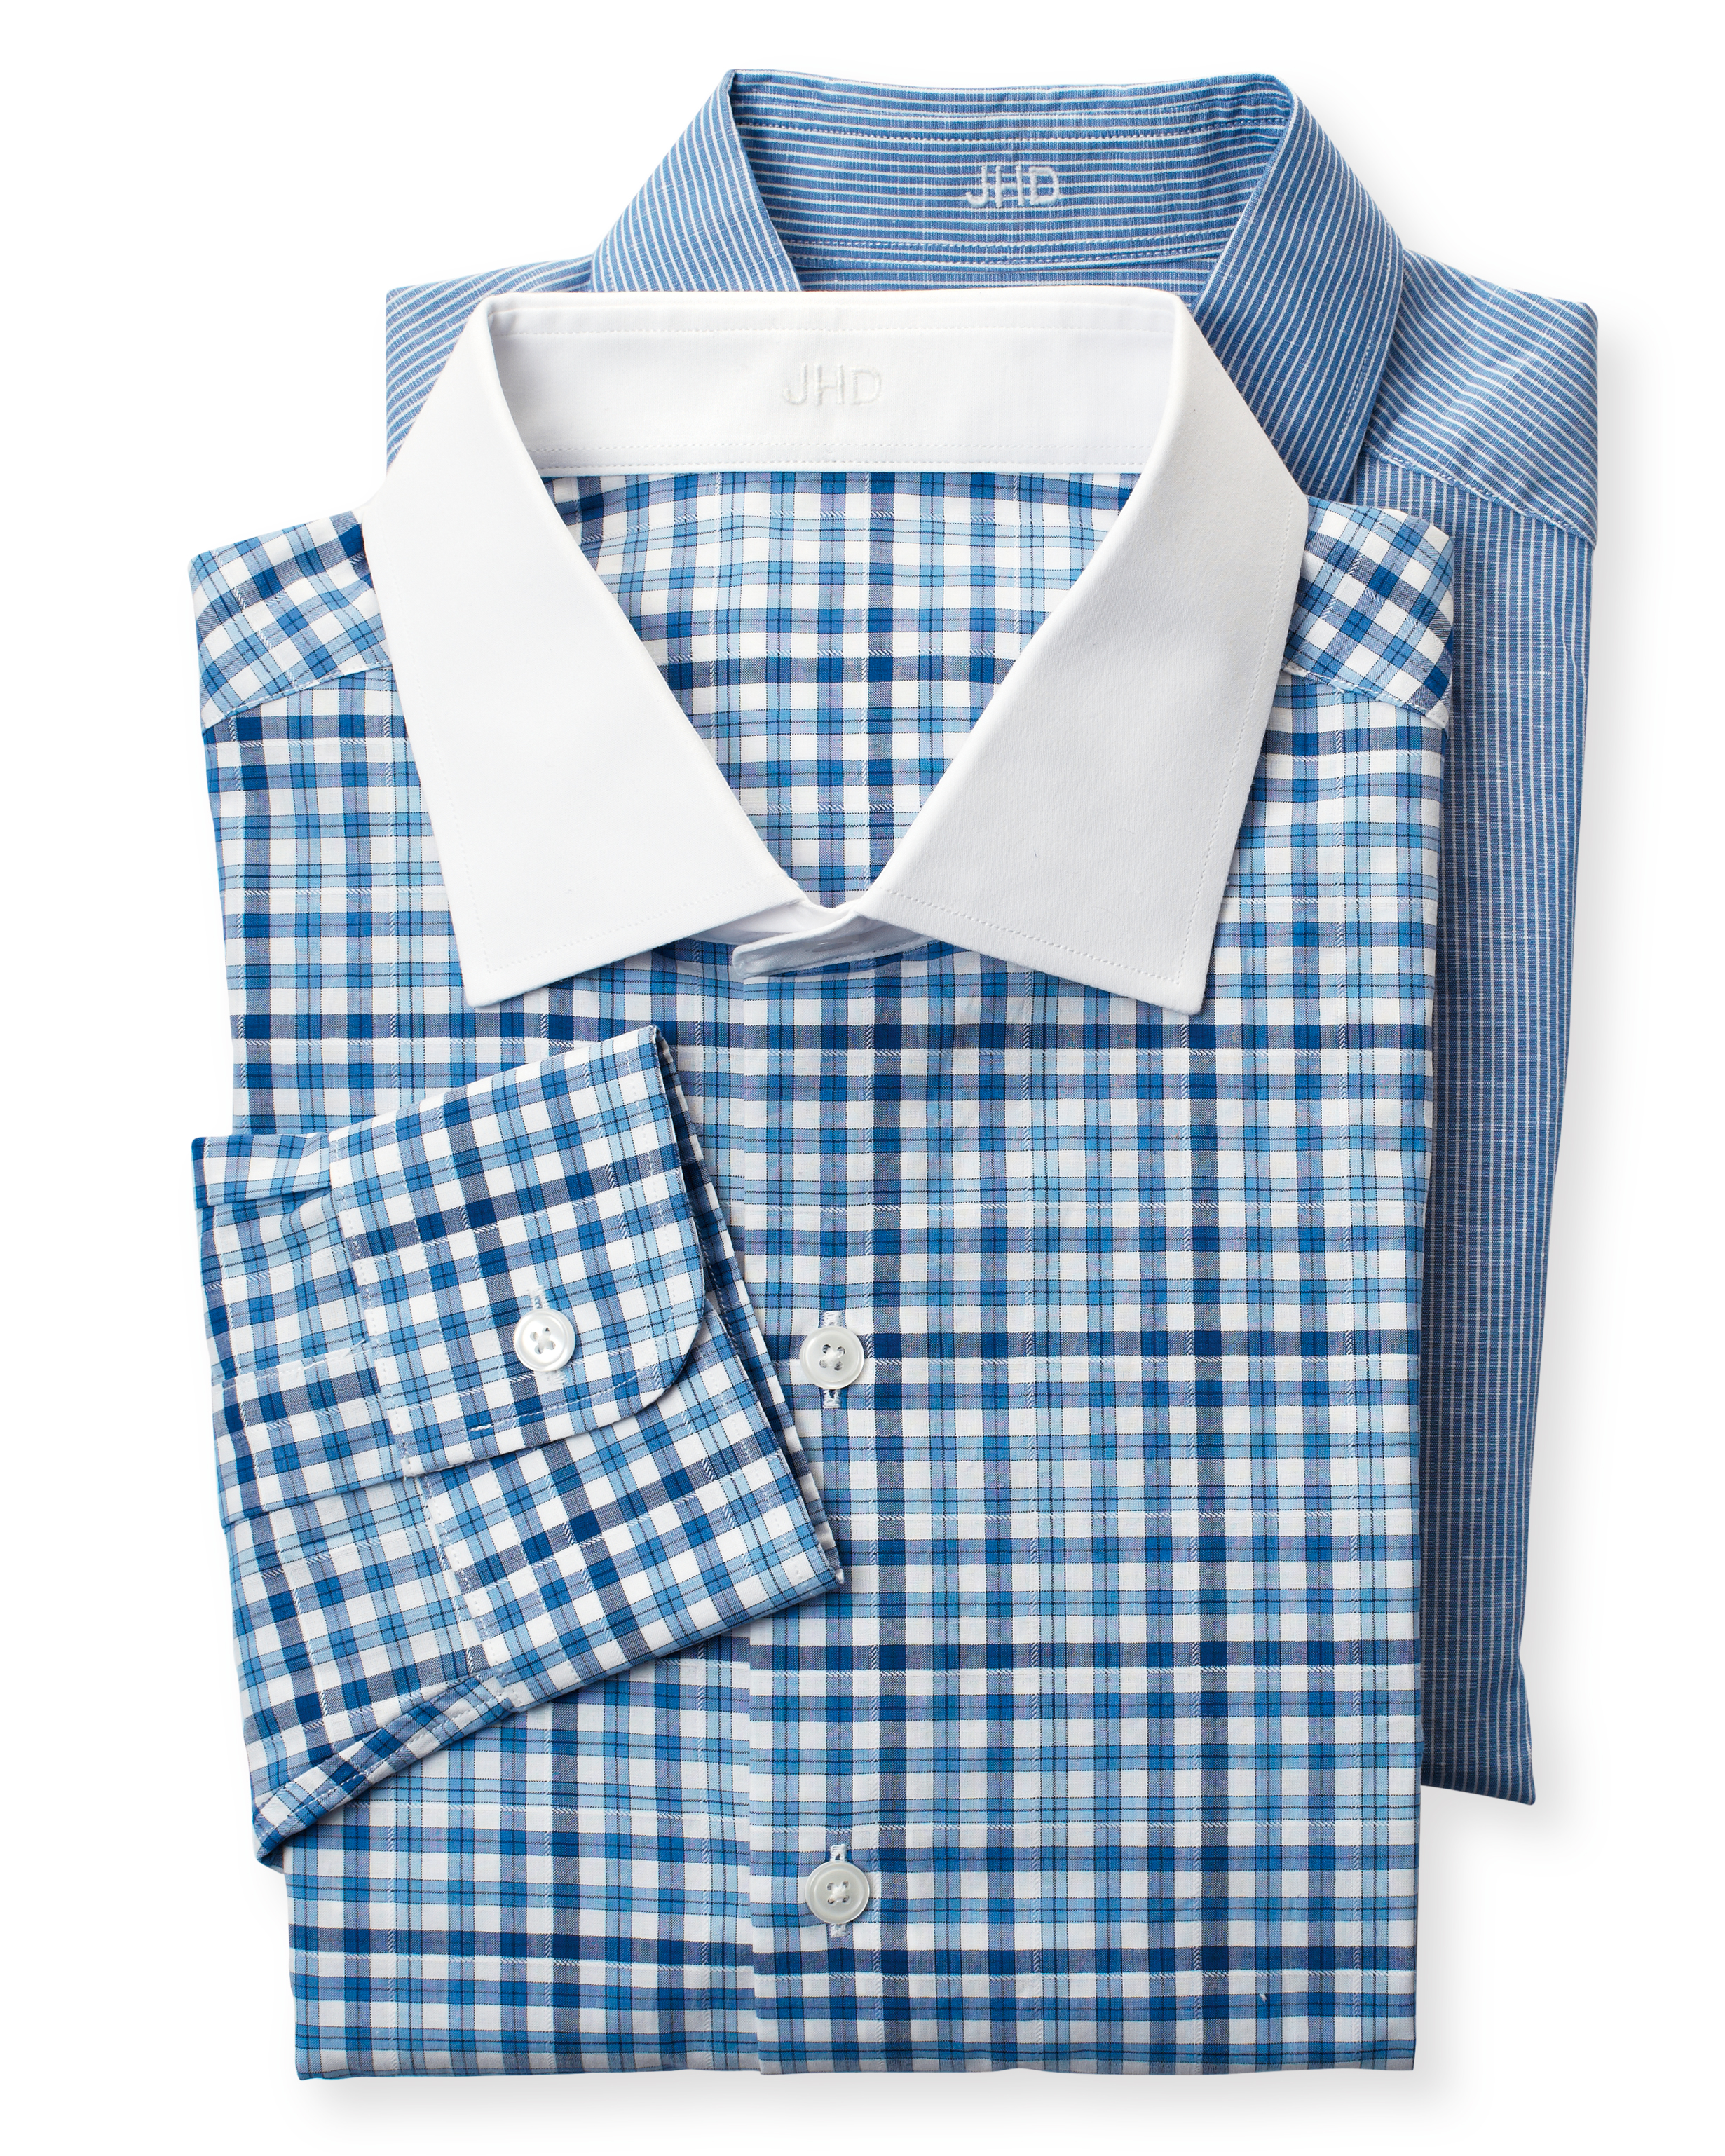 Shirts for Your Groom